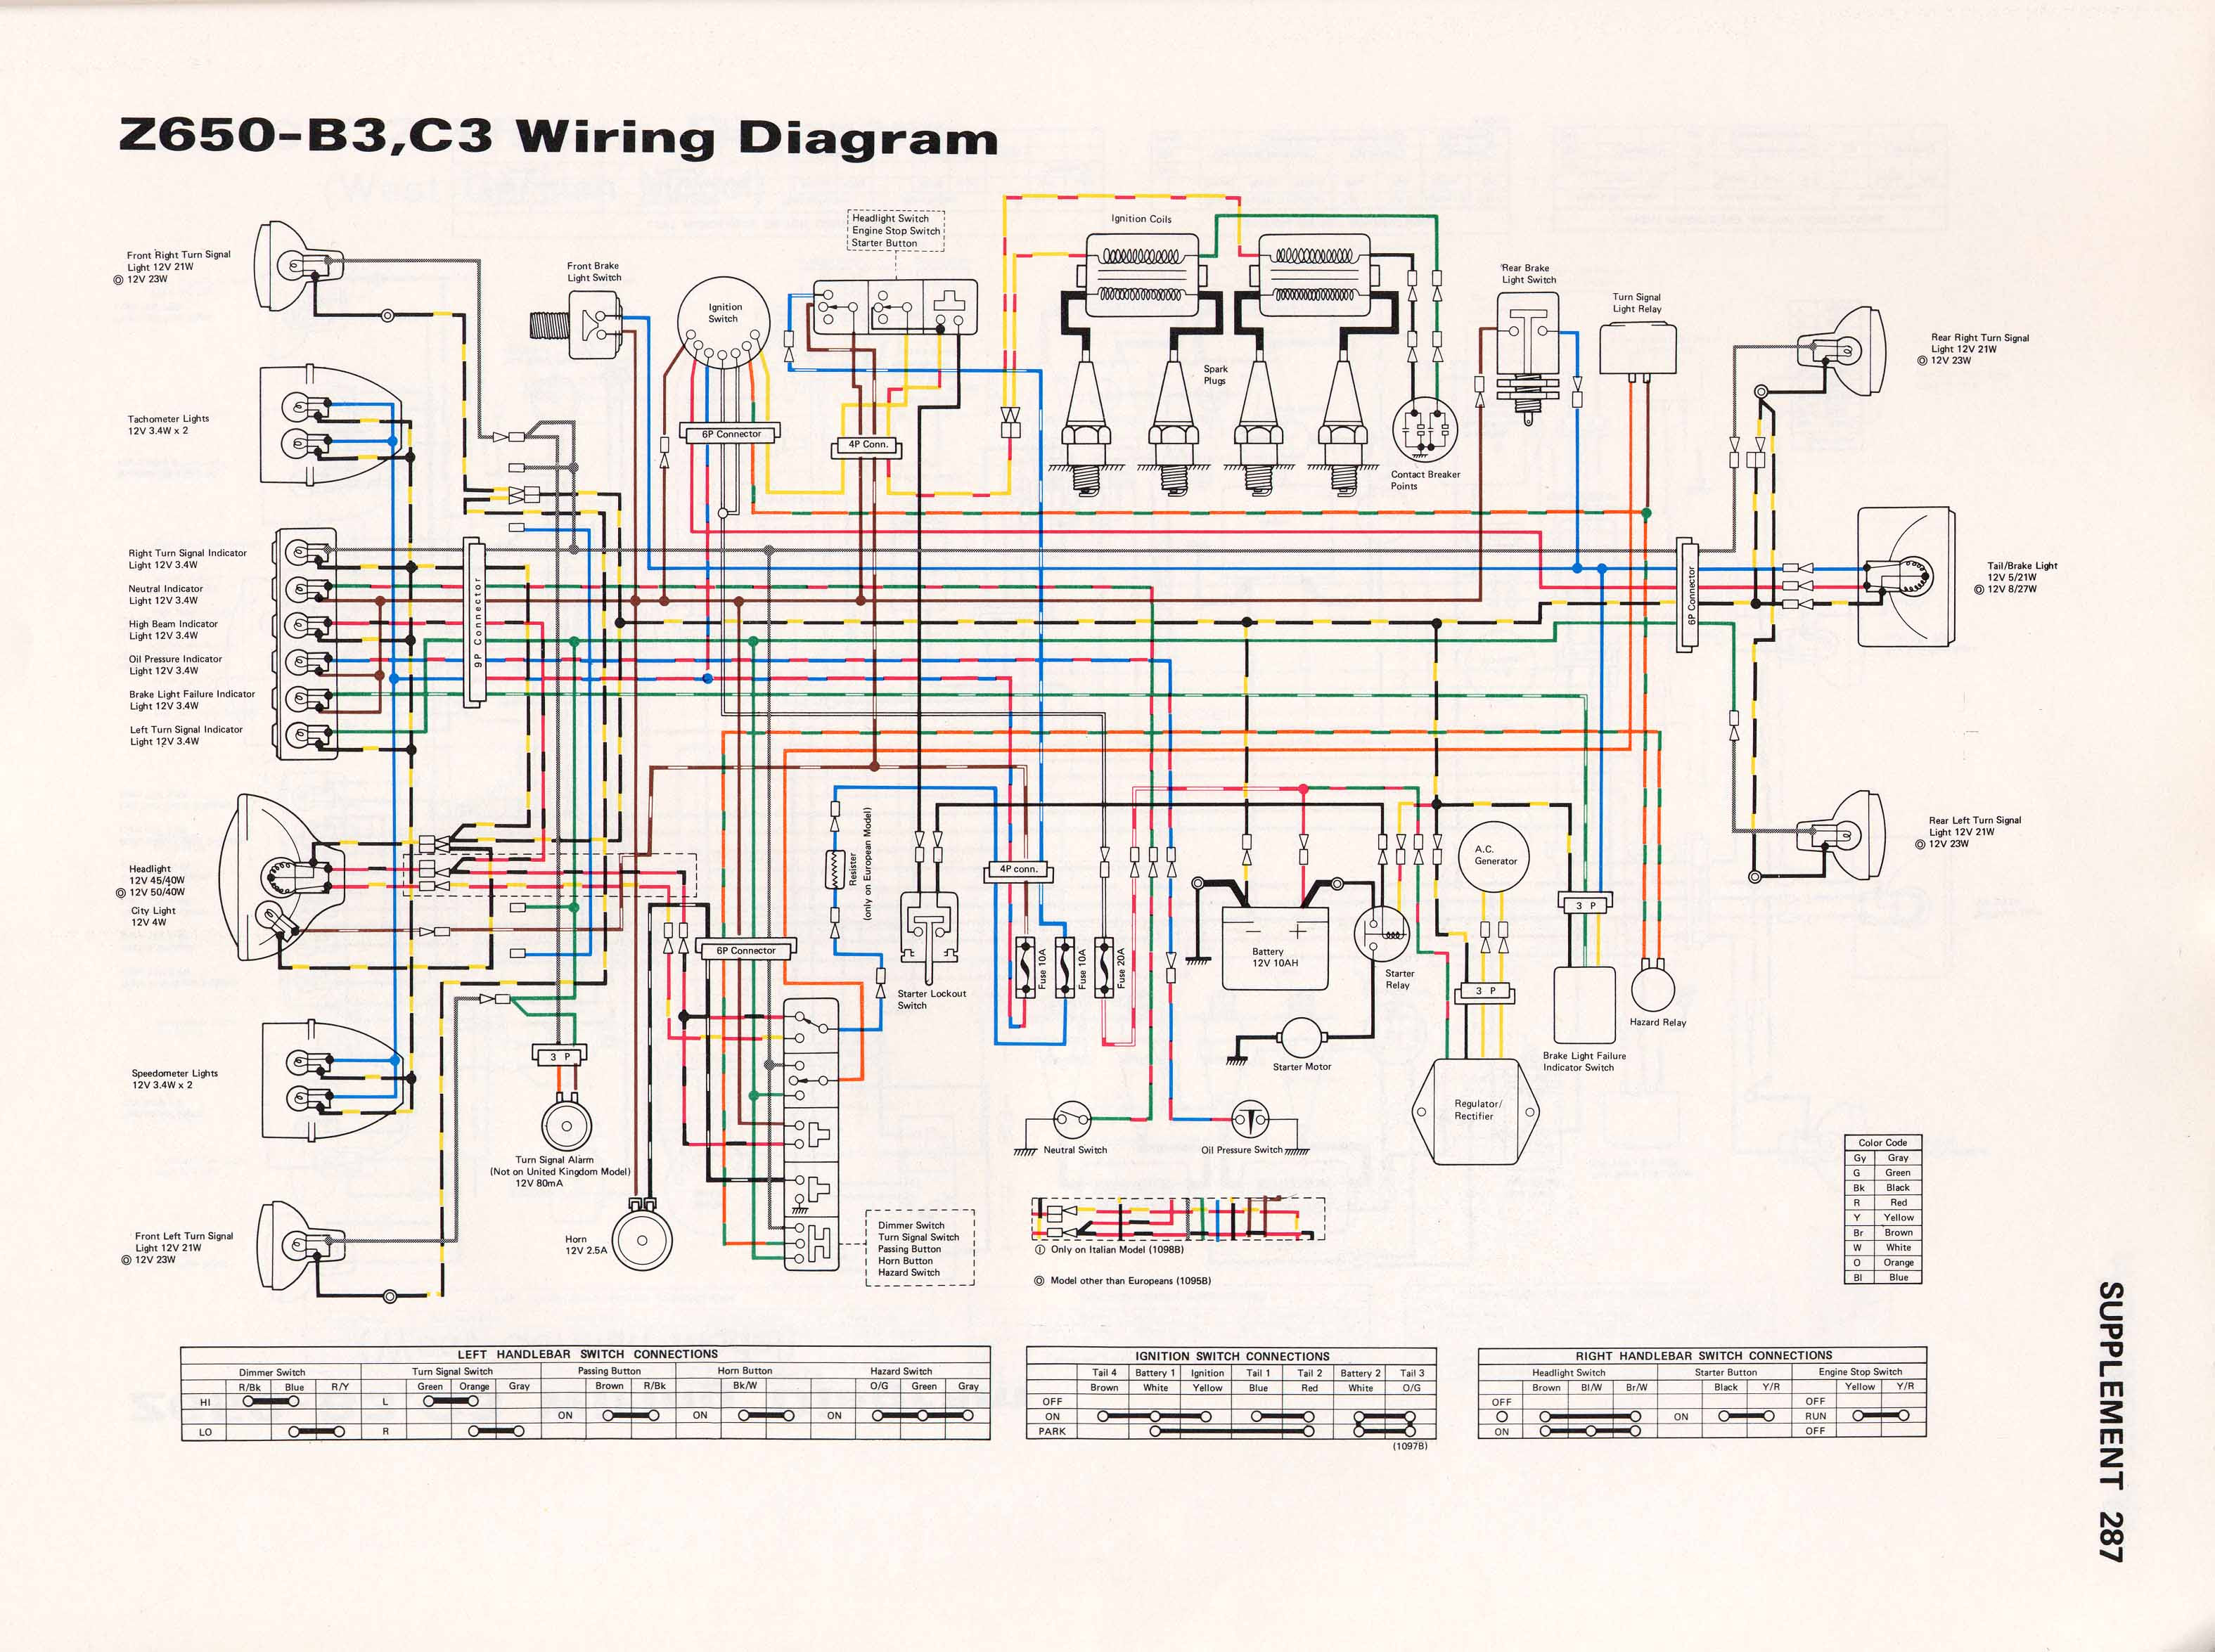 1982 Kz650 Wiring Diagram Western Plow Wiring Schematic Gm For Wiring Diagram Schematics